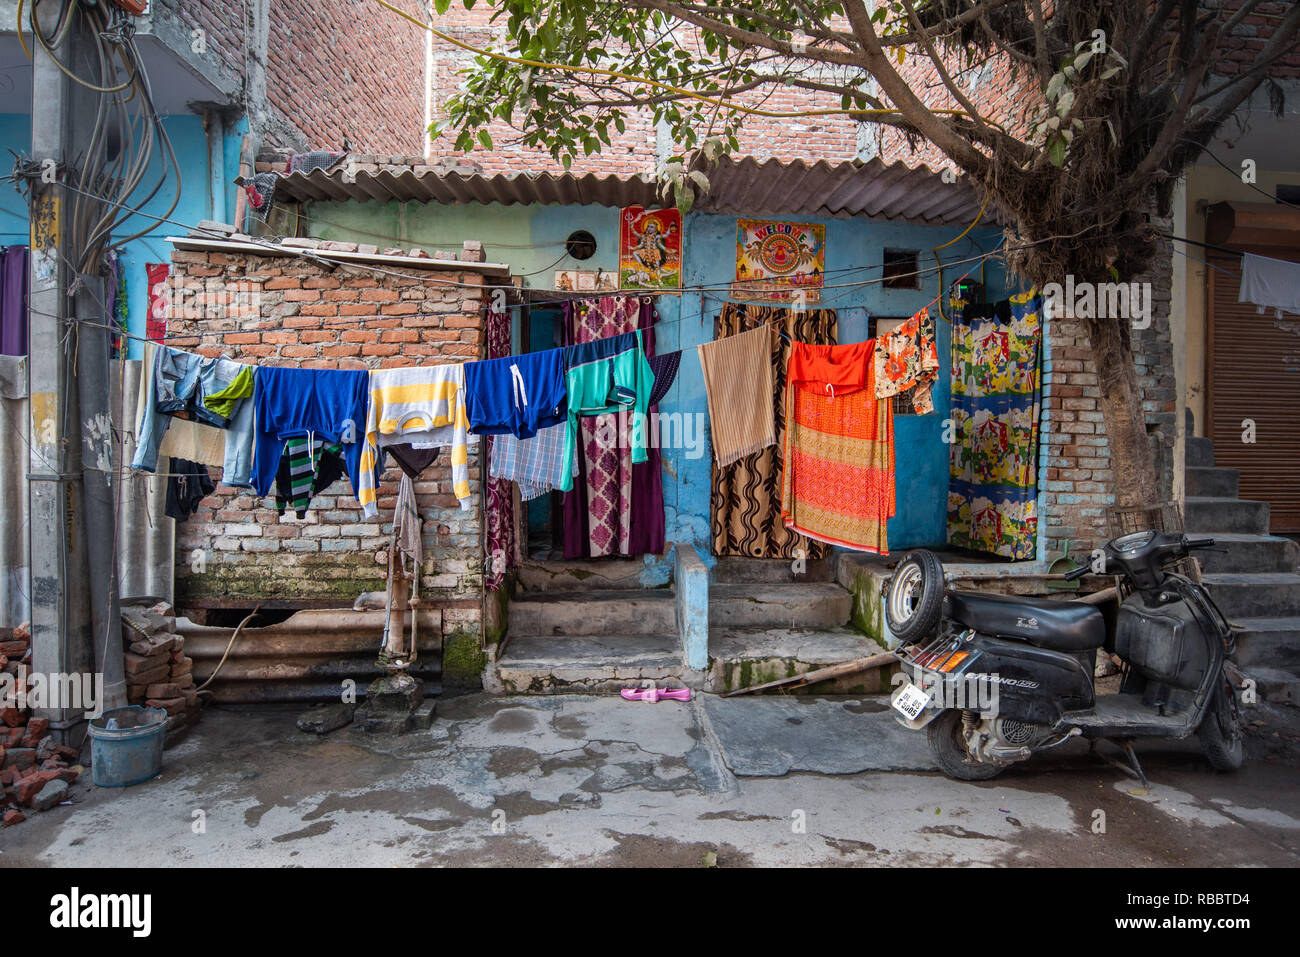 The Front Yard of a house in Madanpur Khadar, New Delhi. Through the front yard the street becomes part of the home. - Stock Image